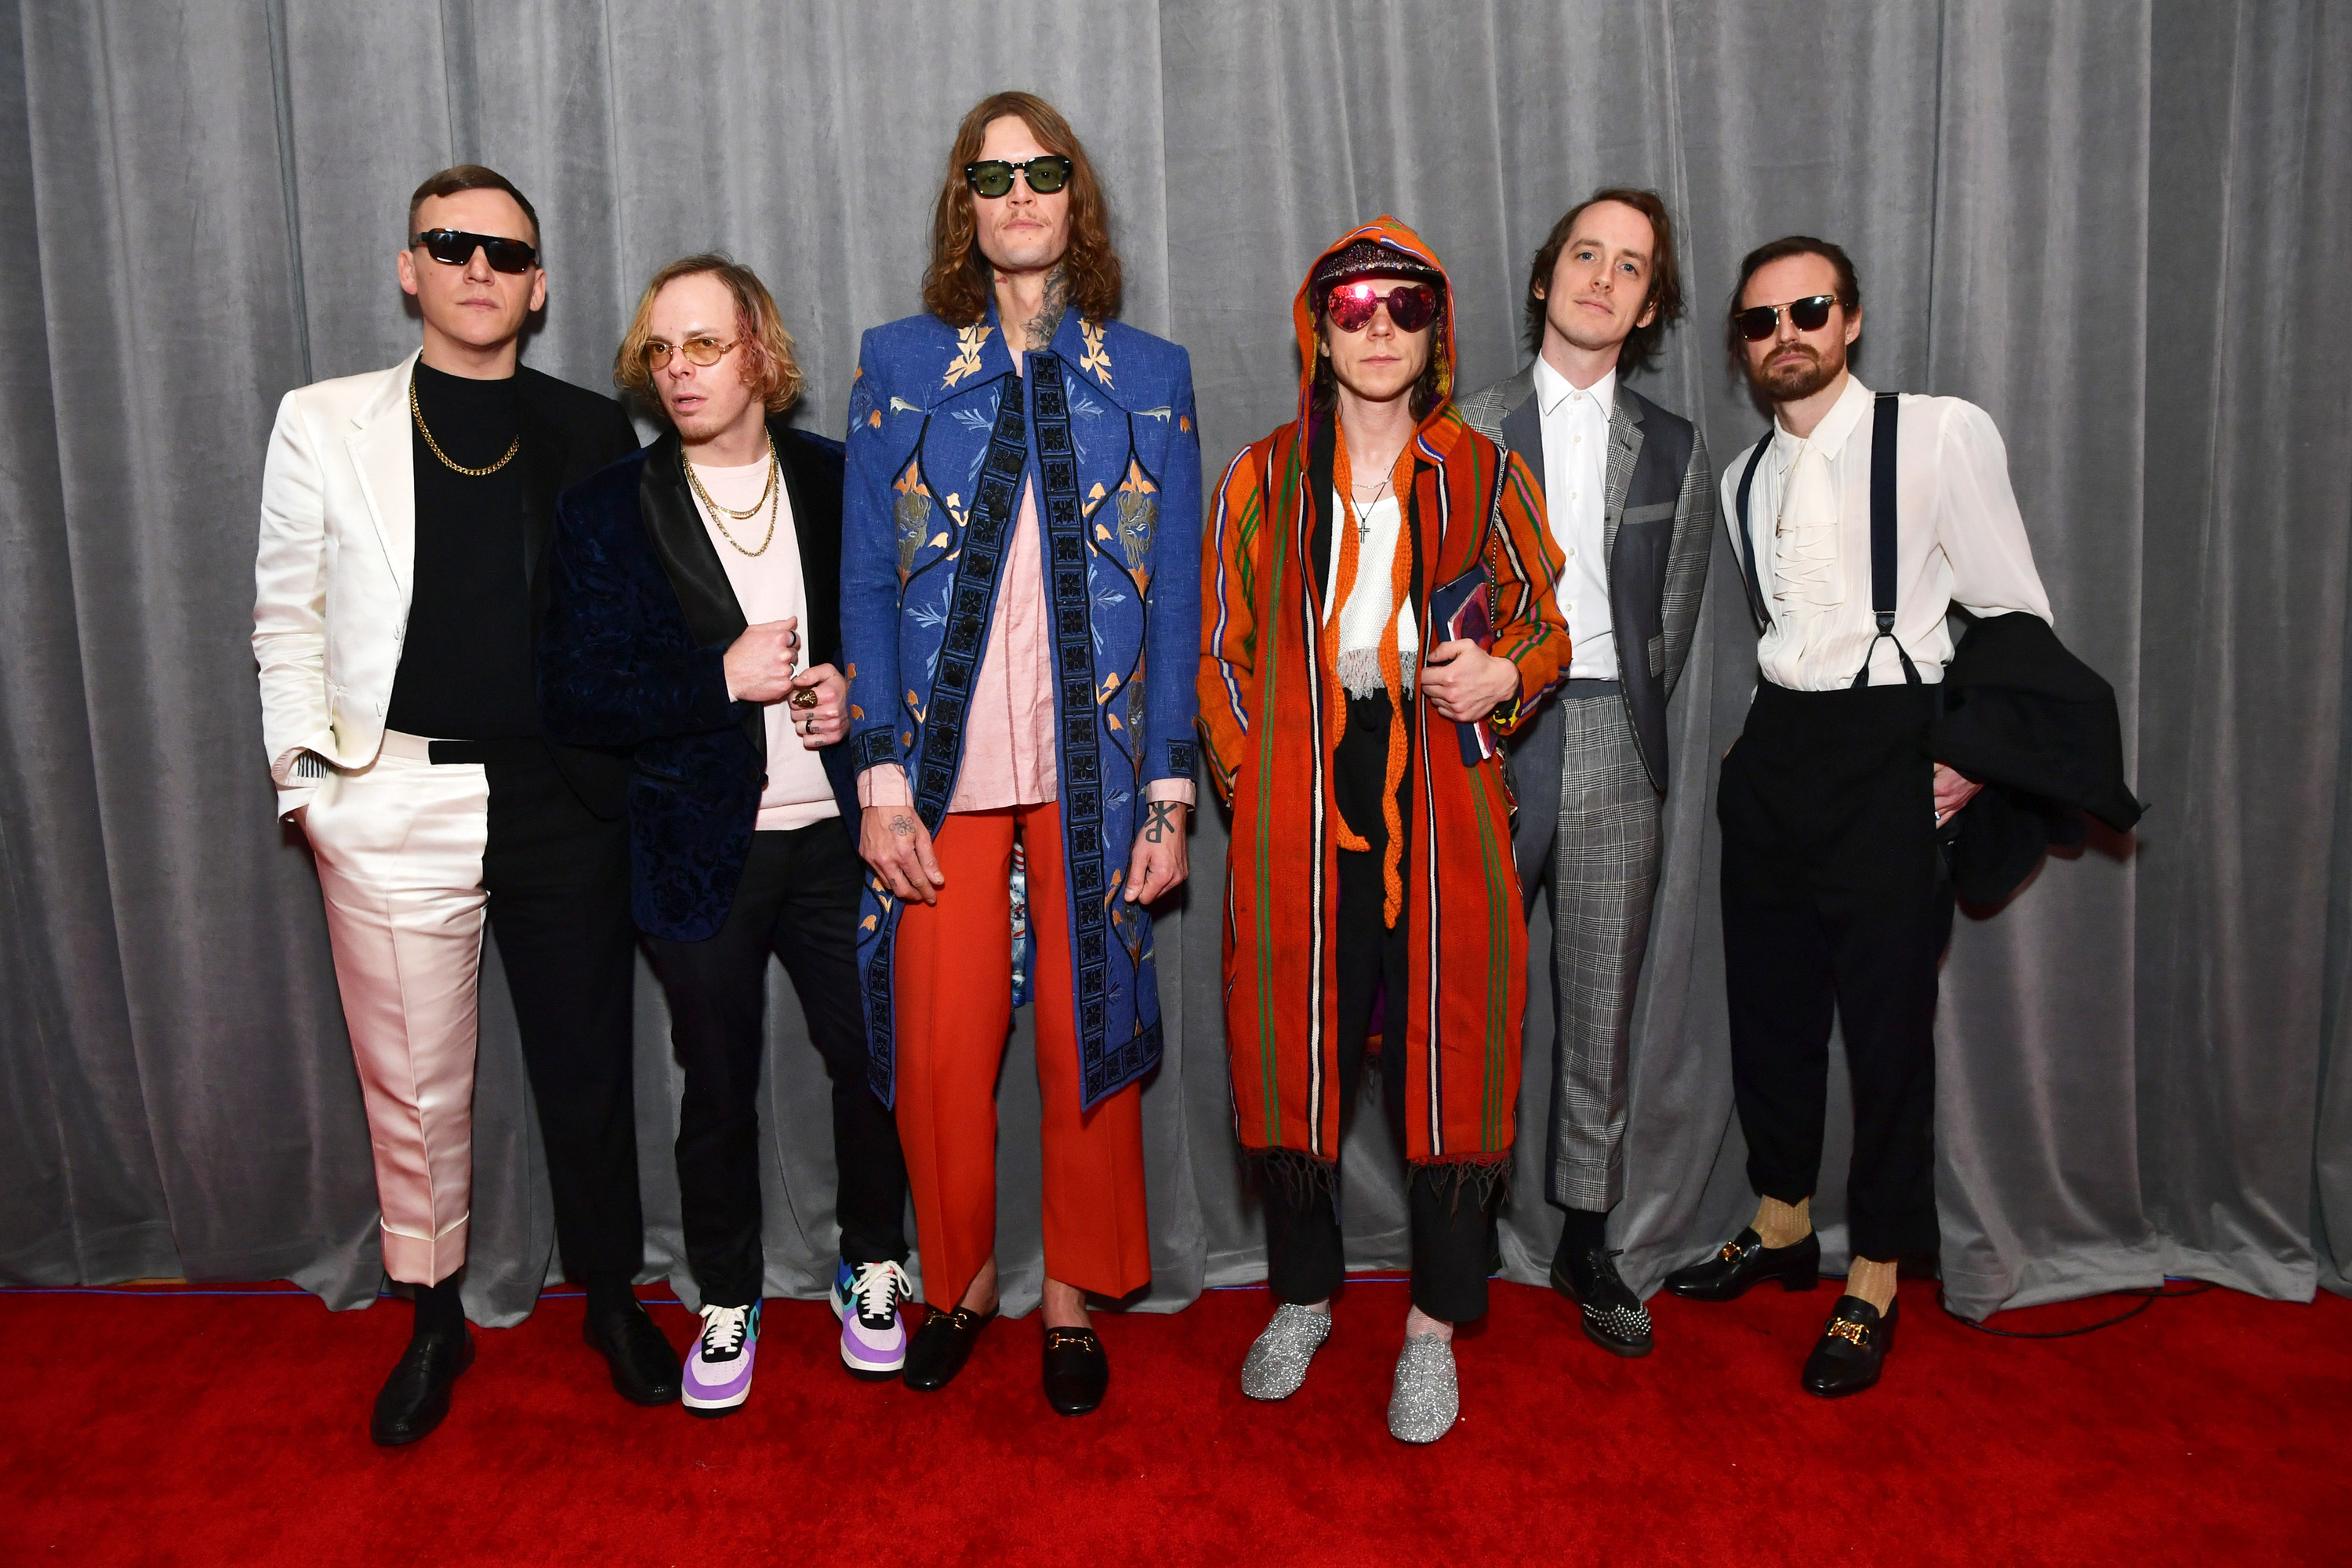 Photo of Cage the Elephant band members at a red carpet event